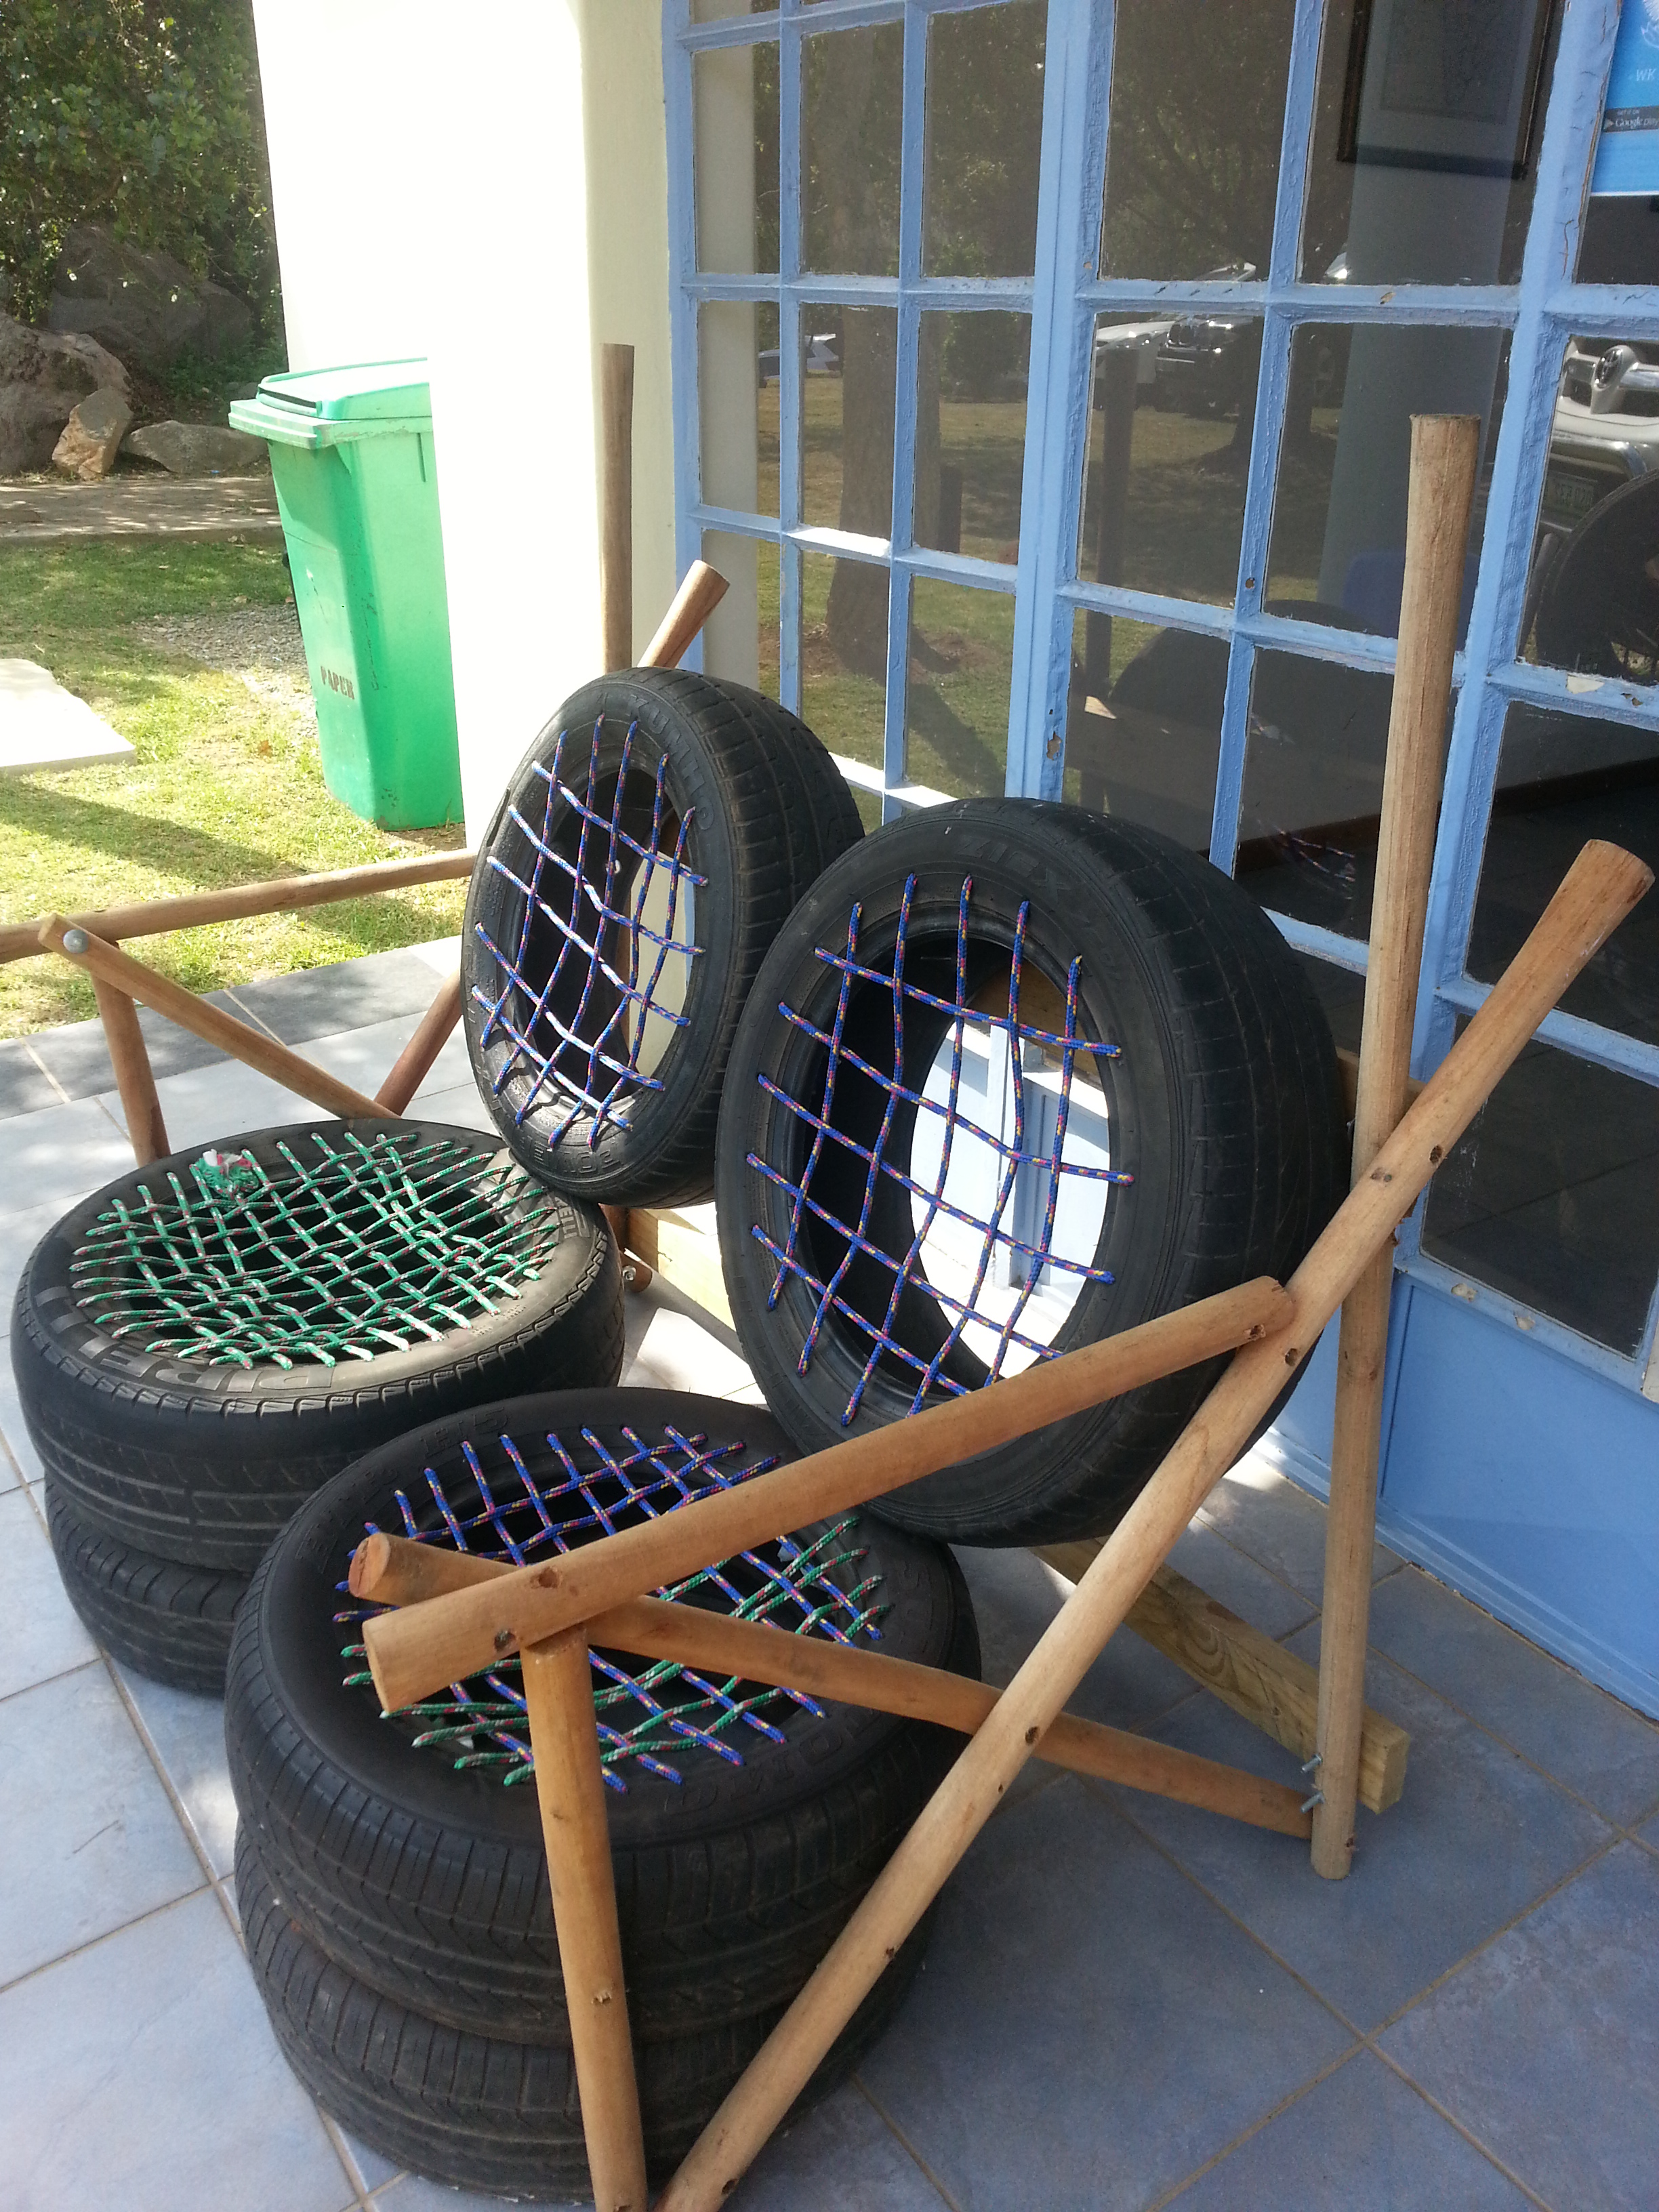 Tire Chairs waterford Nov 2015.jpg